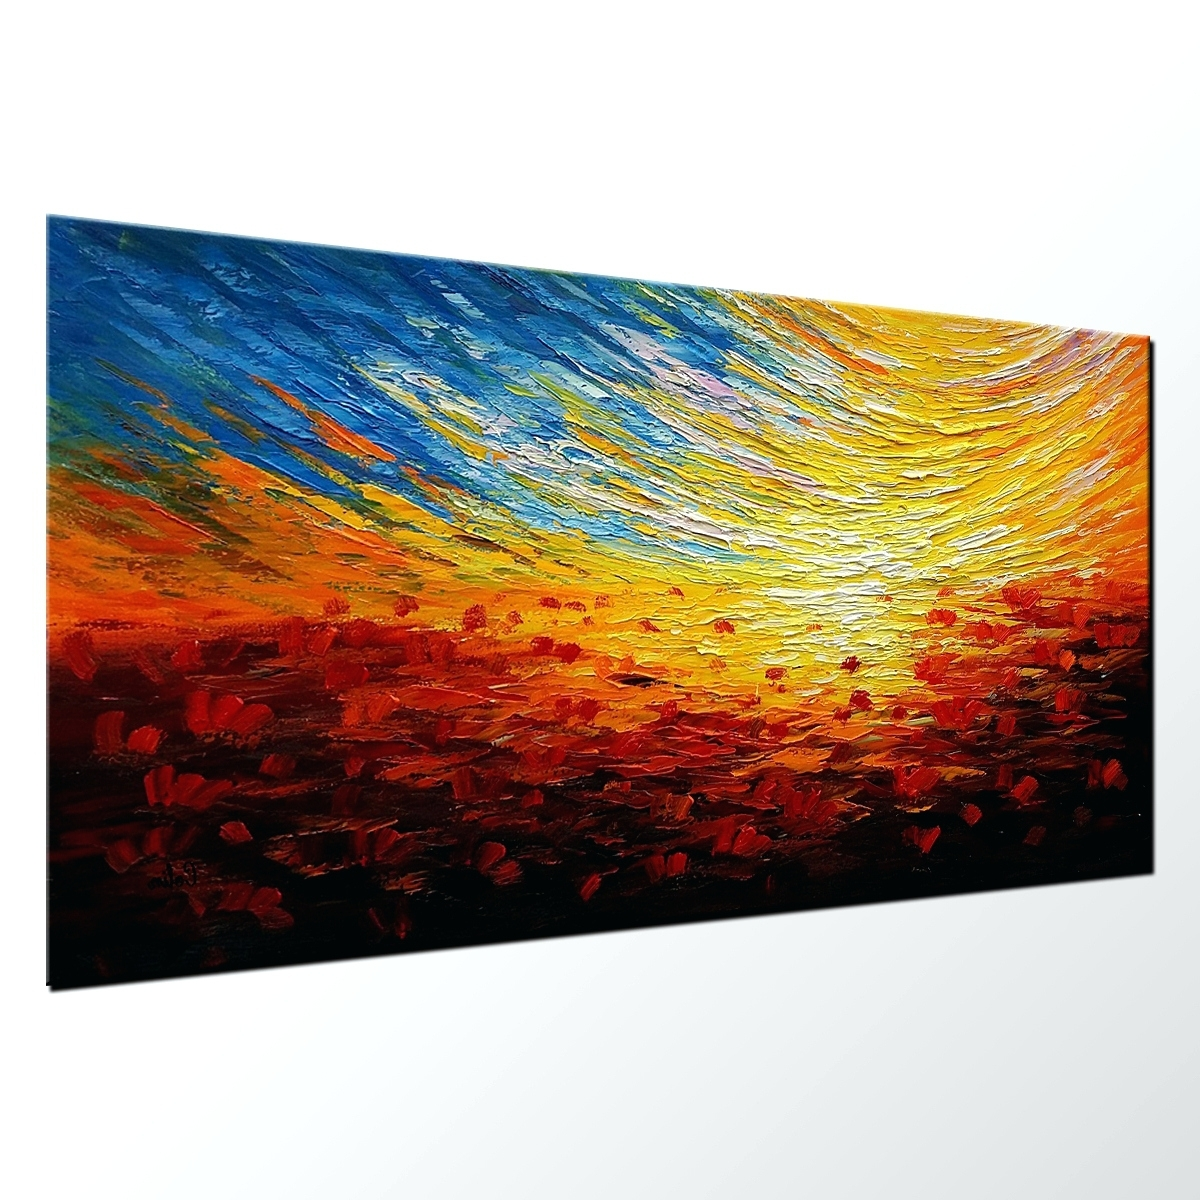 Australian Abstract Wall Art With Regard To Best And Newest Wall Arts: Abstract Canvas Wall Art (View 2 of 15)